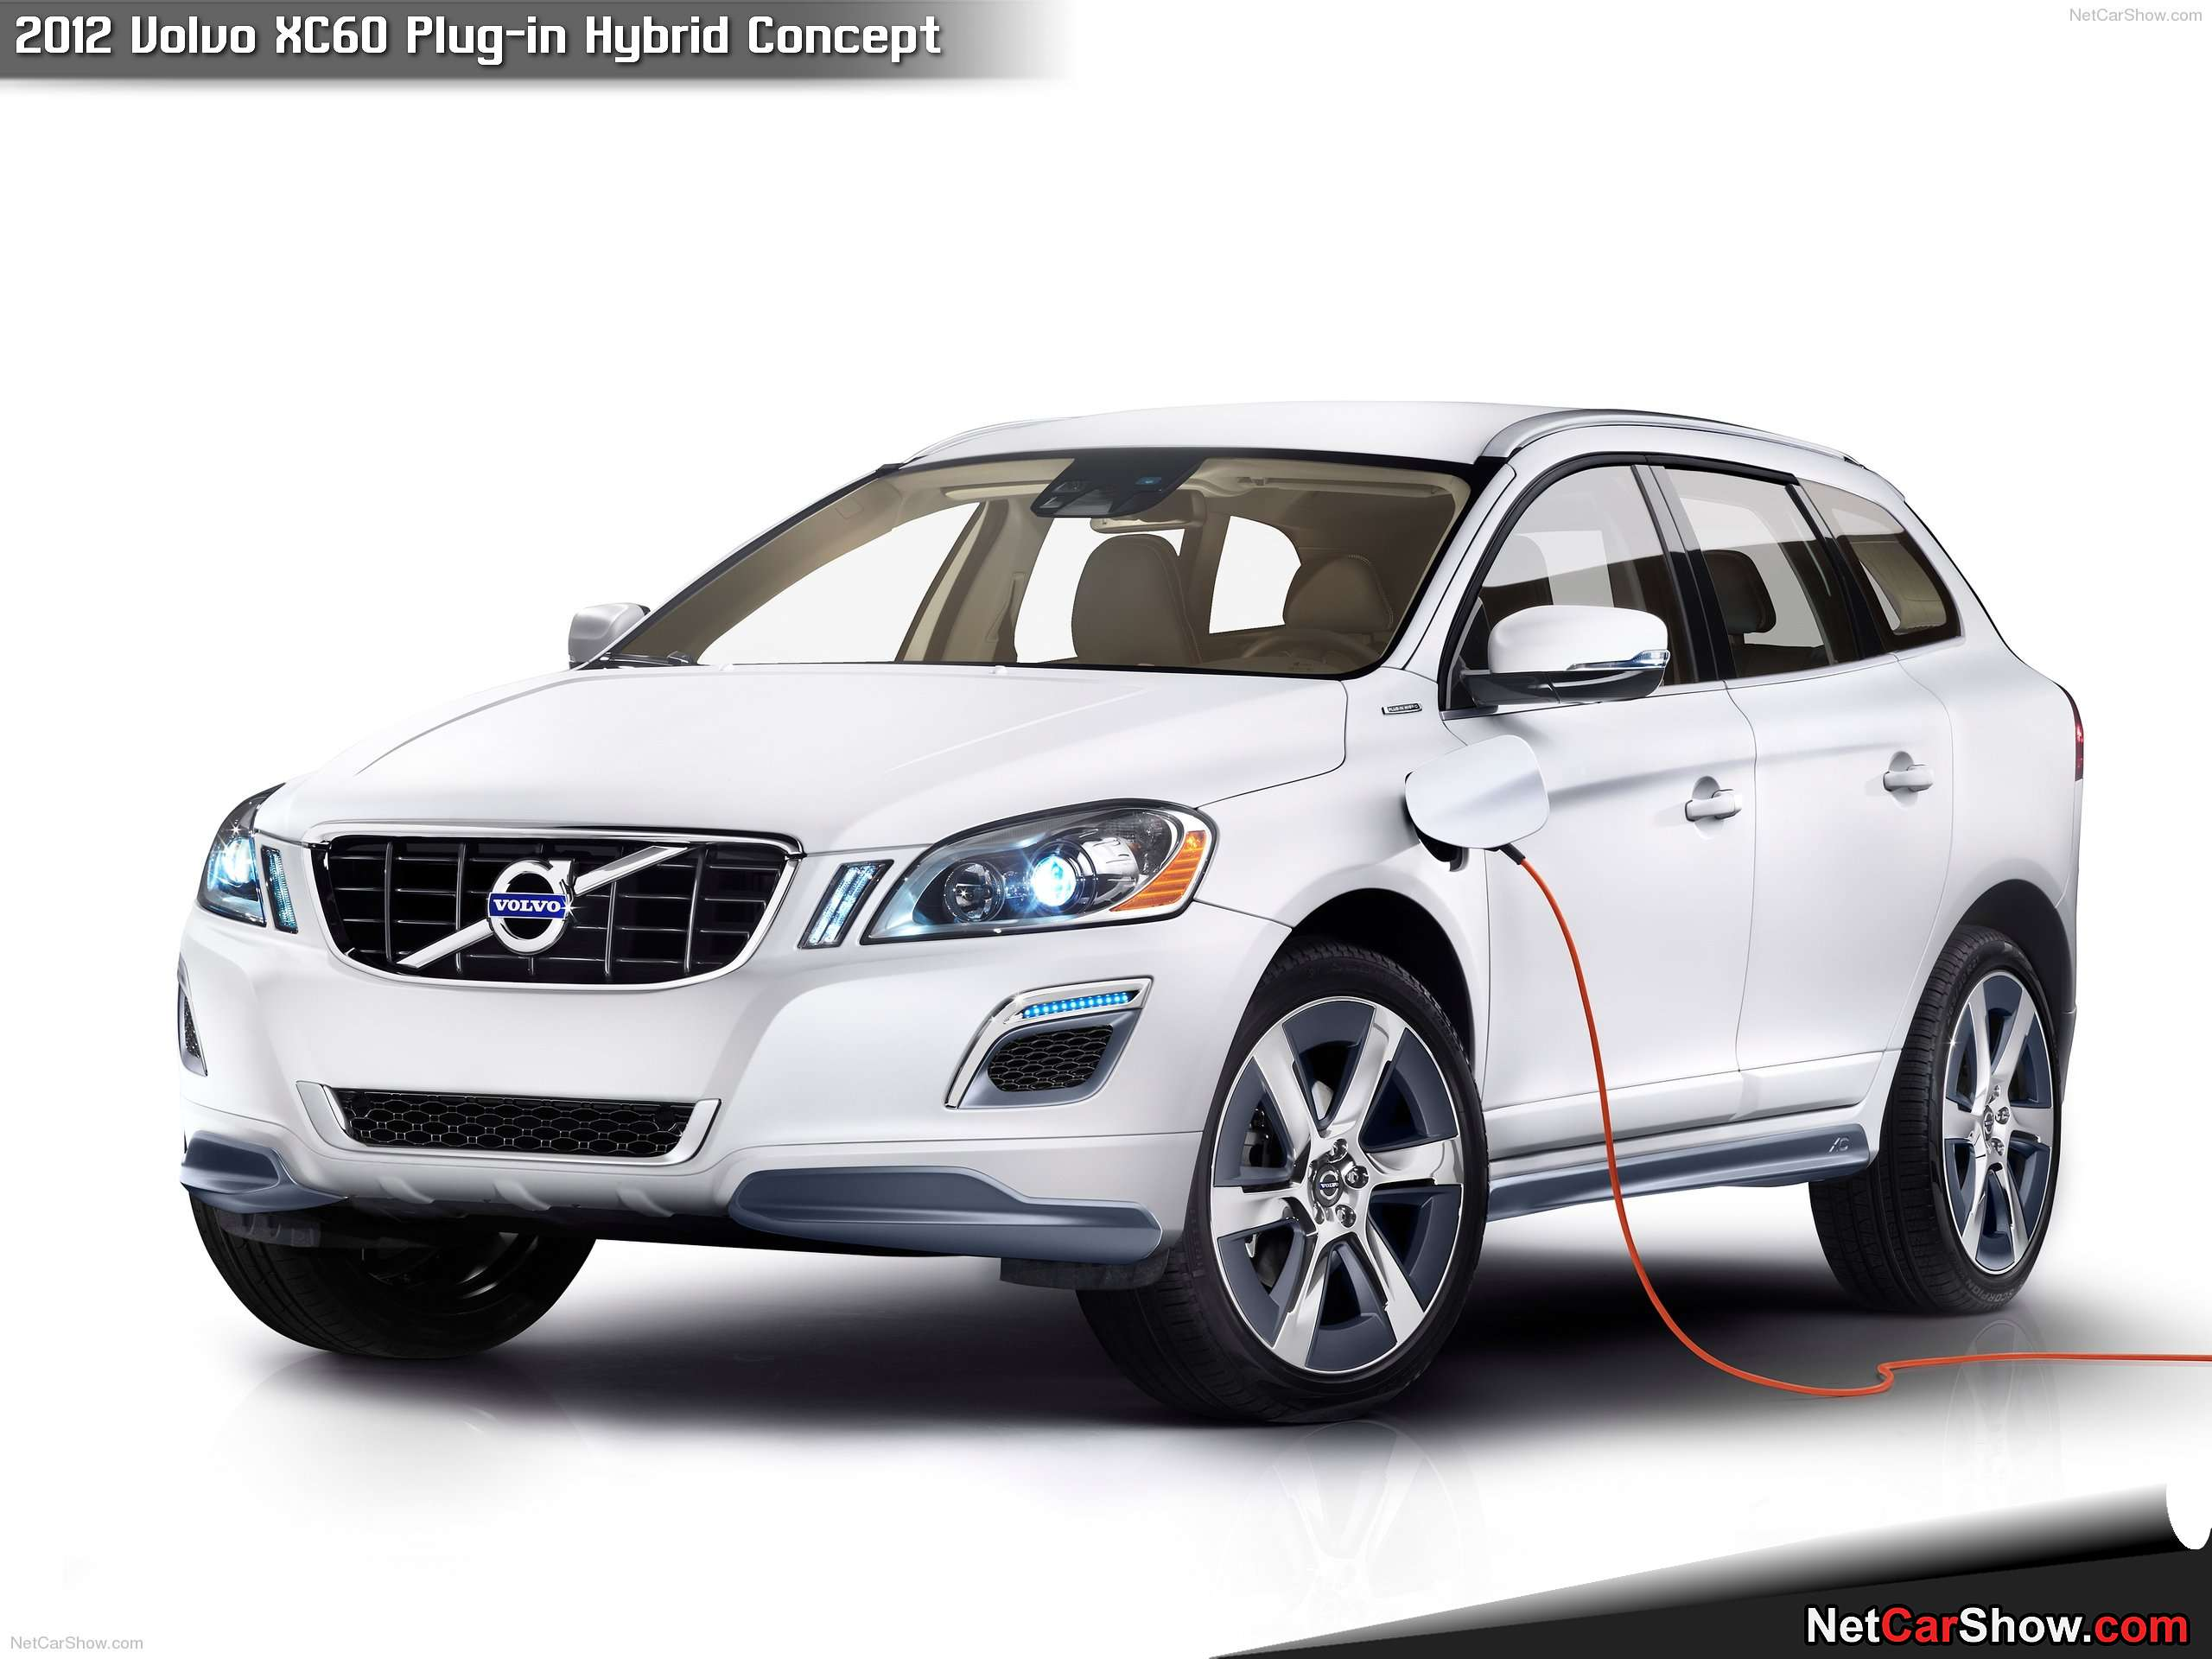 fuel economy tips blog archive the all new volvo xc60 plug in hybrid car. Black Bedroom Furniture Sets. Home Design Ideas